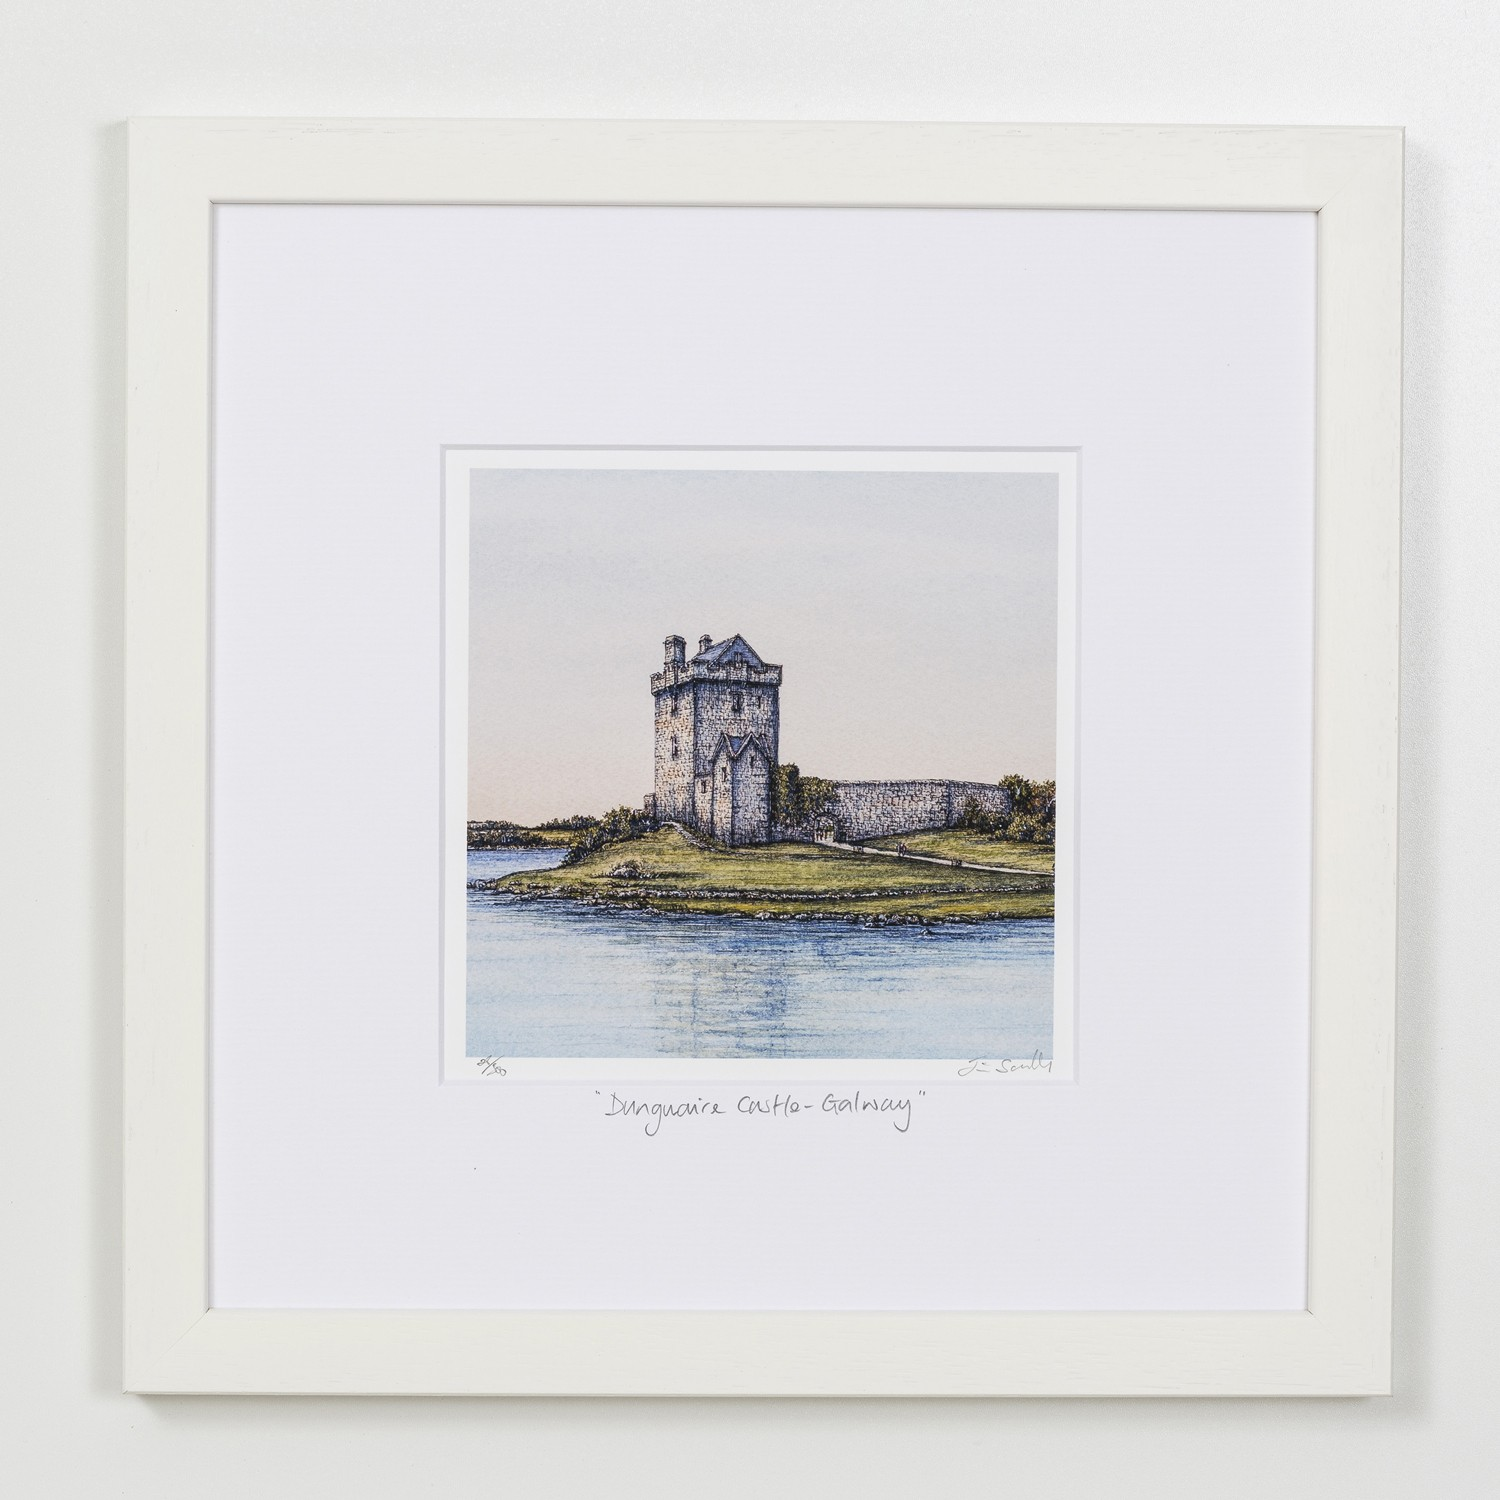 Dunduaire-Castle-Galway-Square-Frame